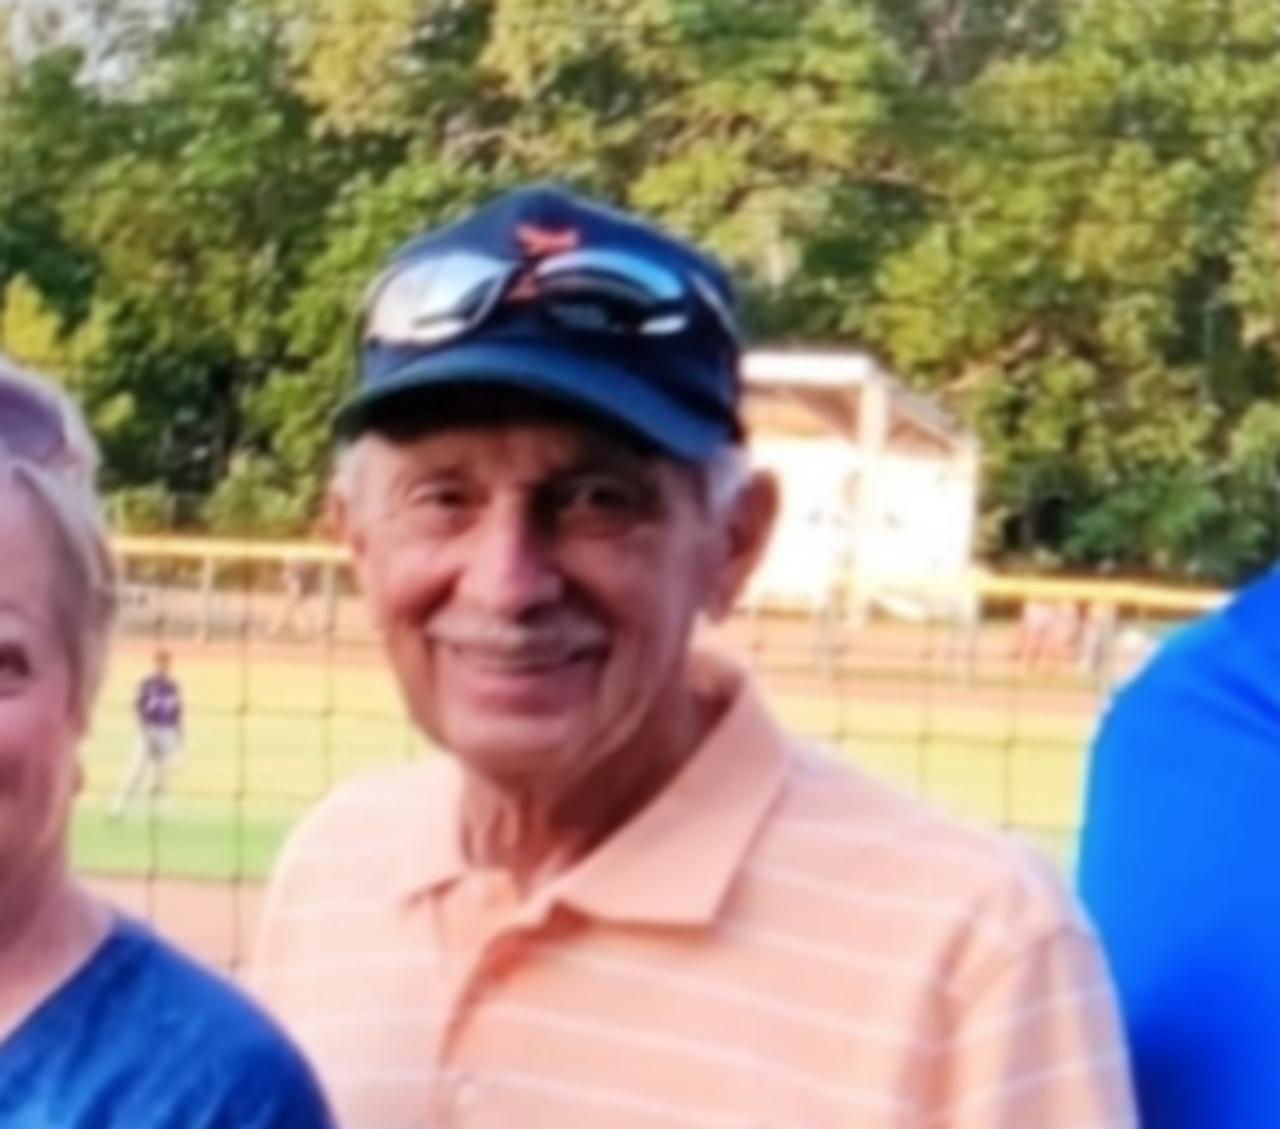 Searches ongoing for missing 79-year-old man from Dryden Township